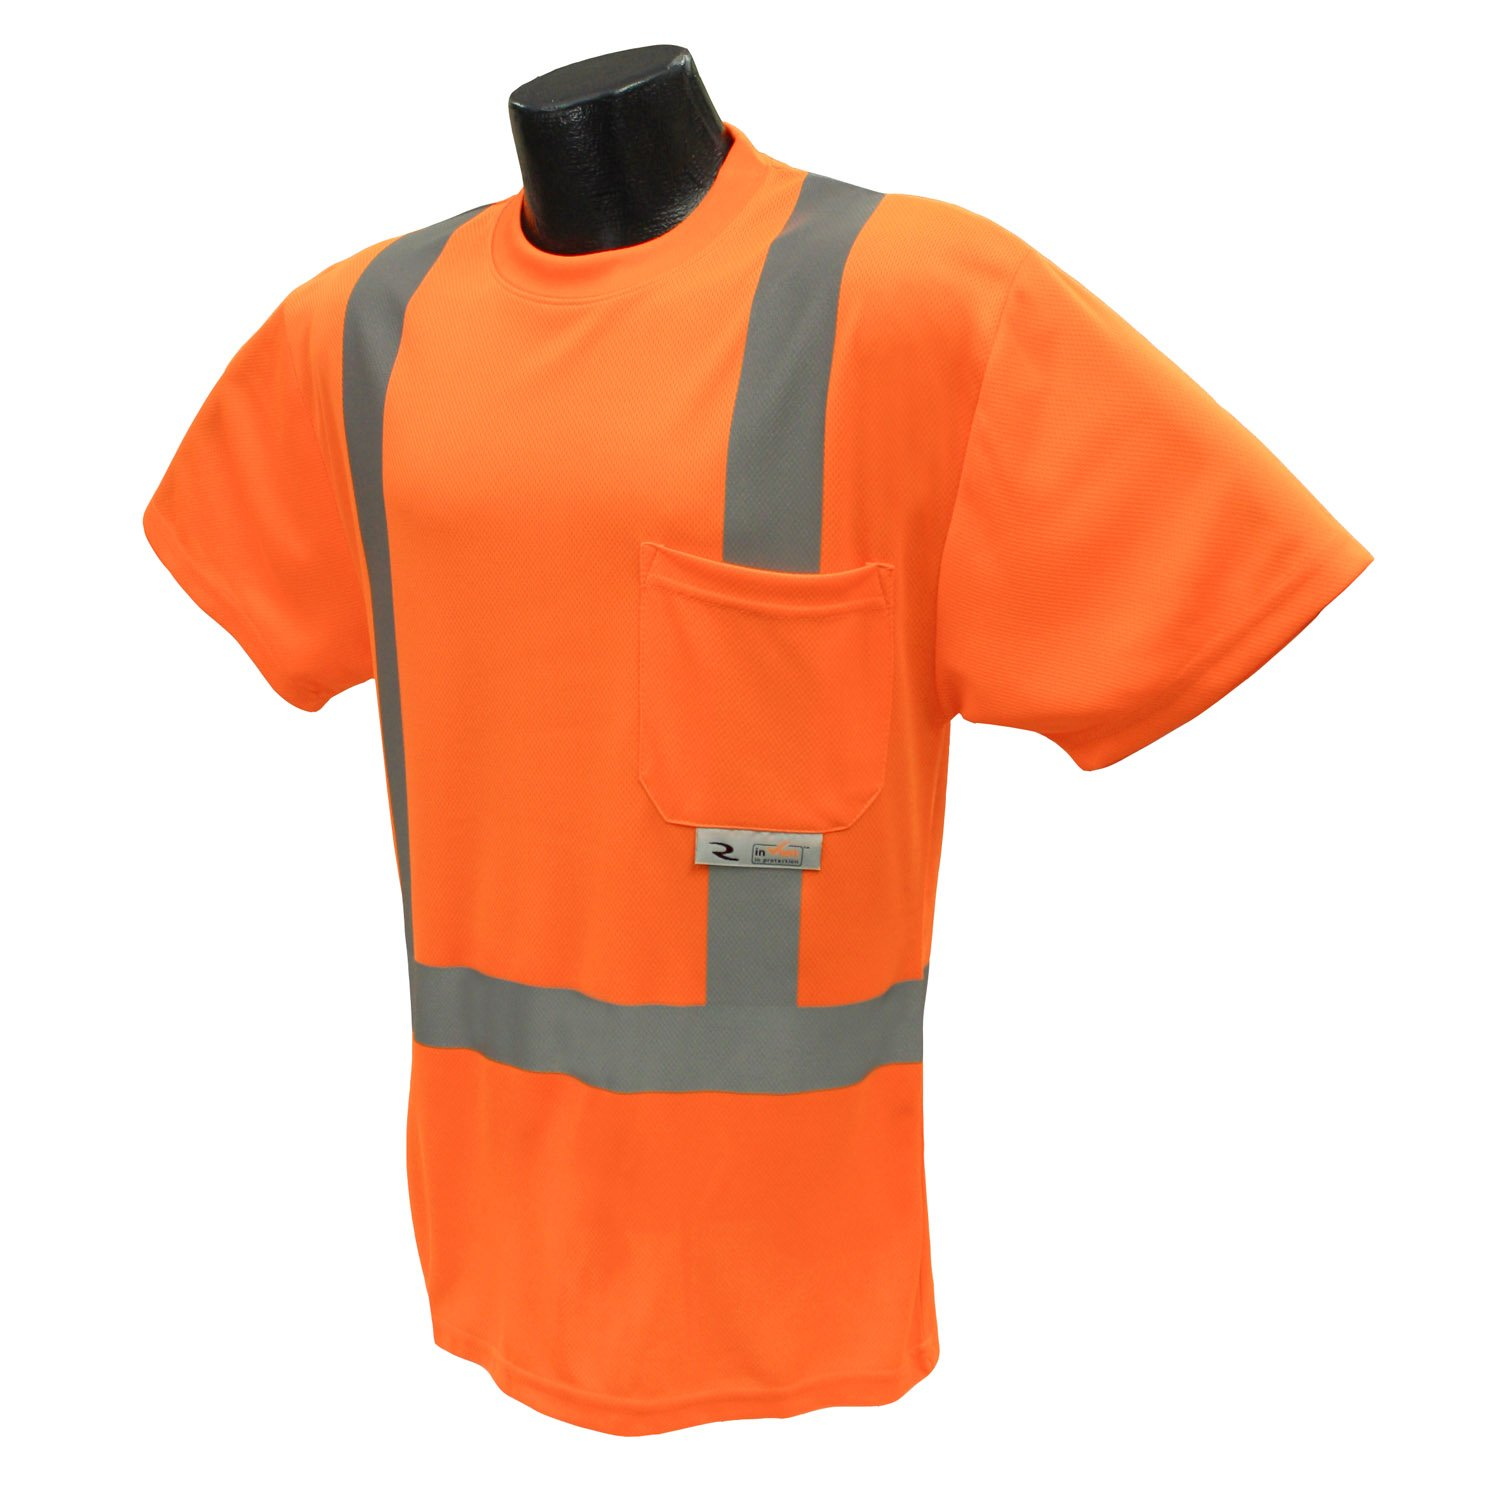 Radians ST11-2POS-L High-Visibility Class 2 T-Shirt with Moisture Wicking Mesh, Large, Orange